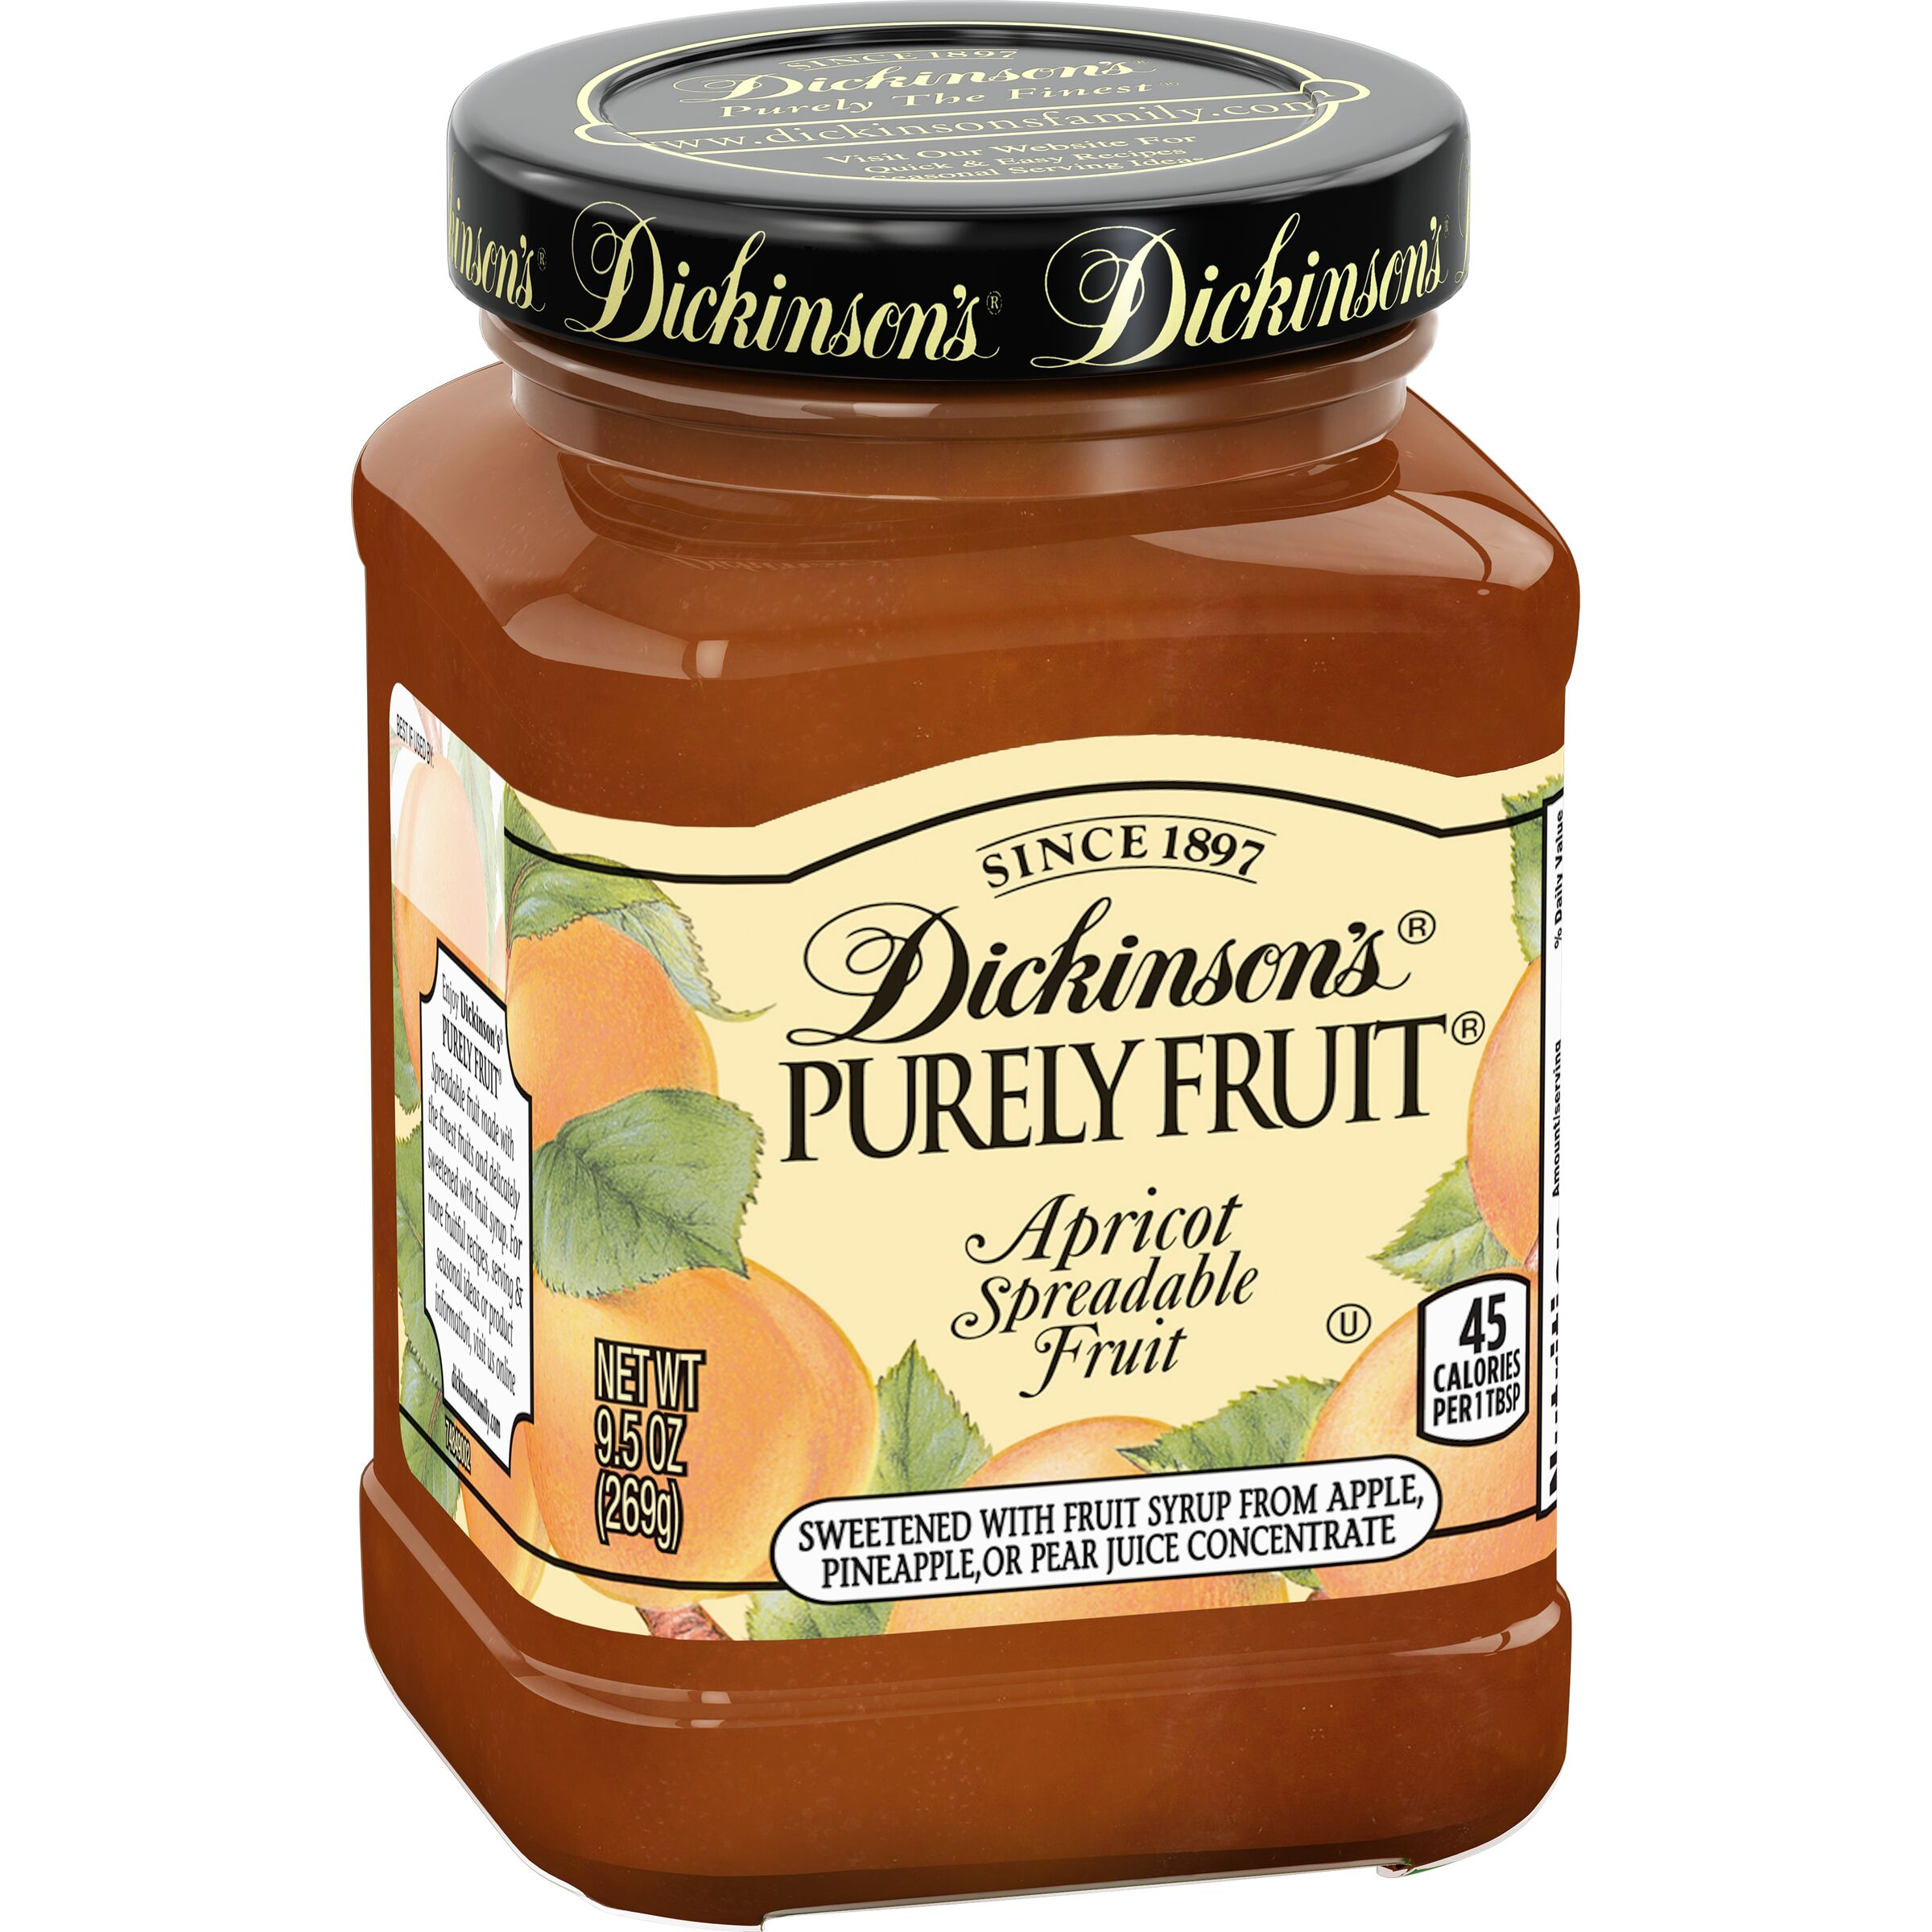 Dickinson's<sup>®</sup> Purely Fruit Apricot Spreadable Fruit